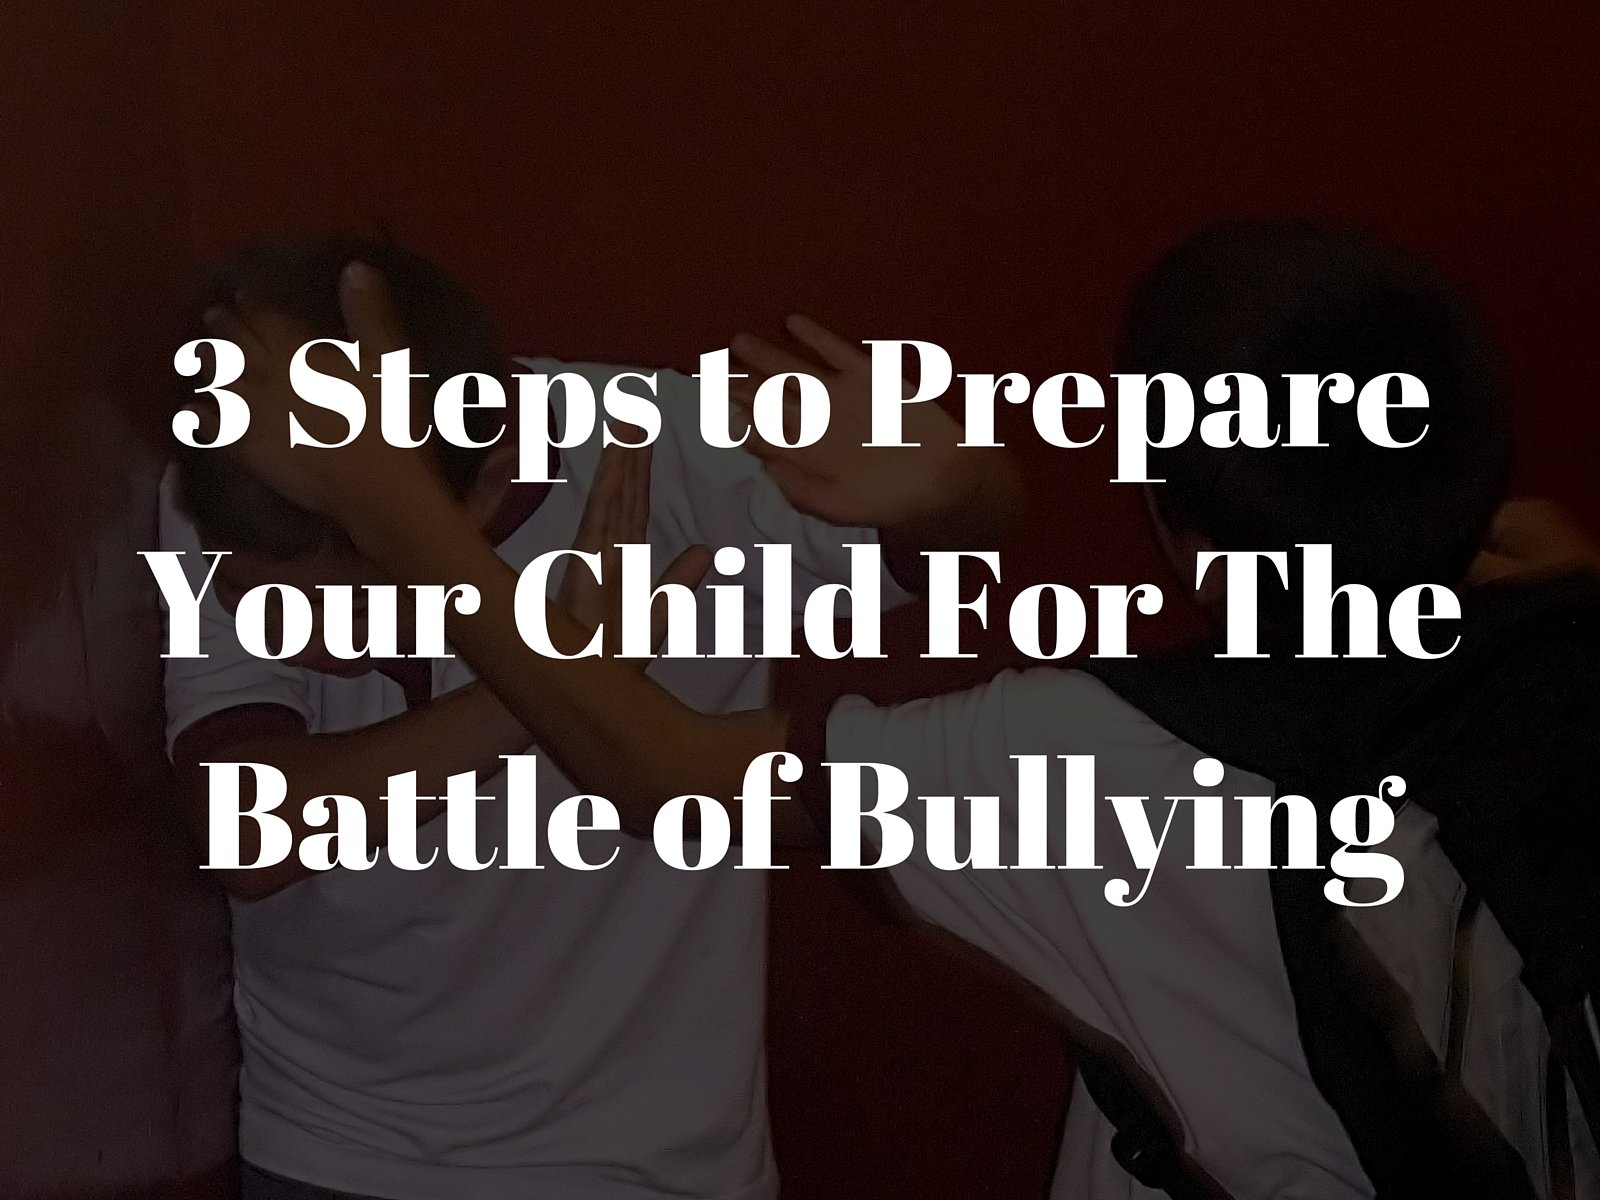 3 Steps to Prepare Your Child for the Battle of Bullying